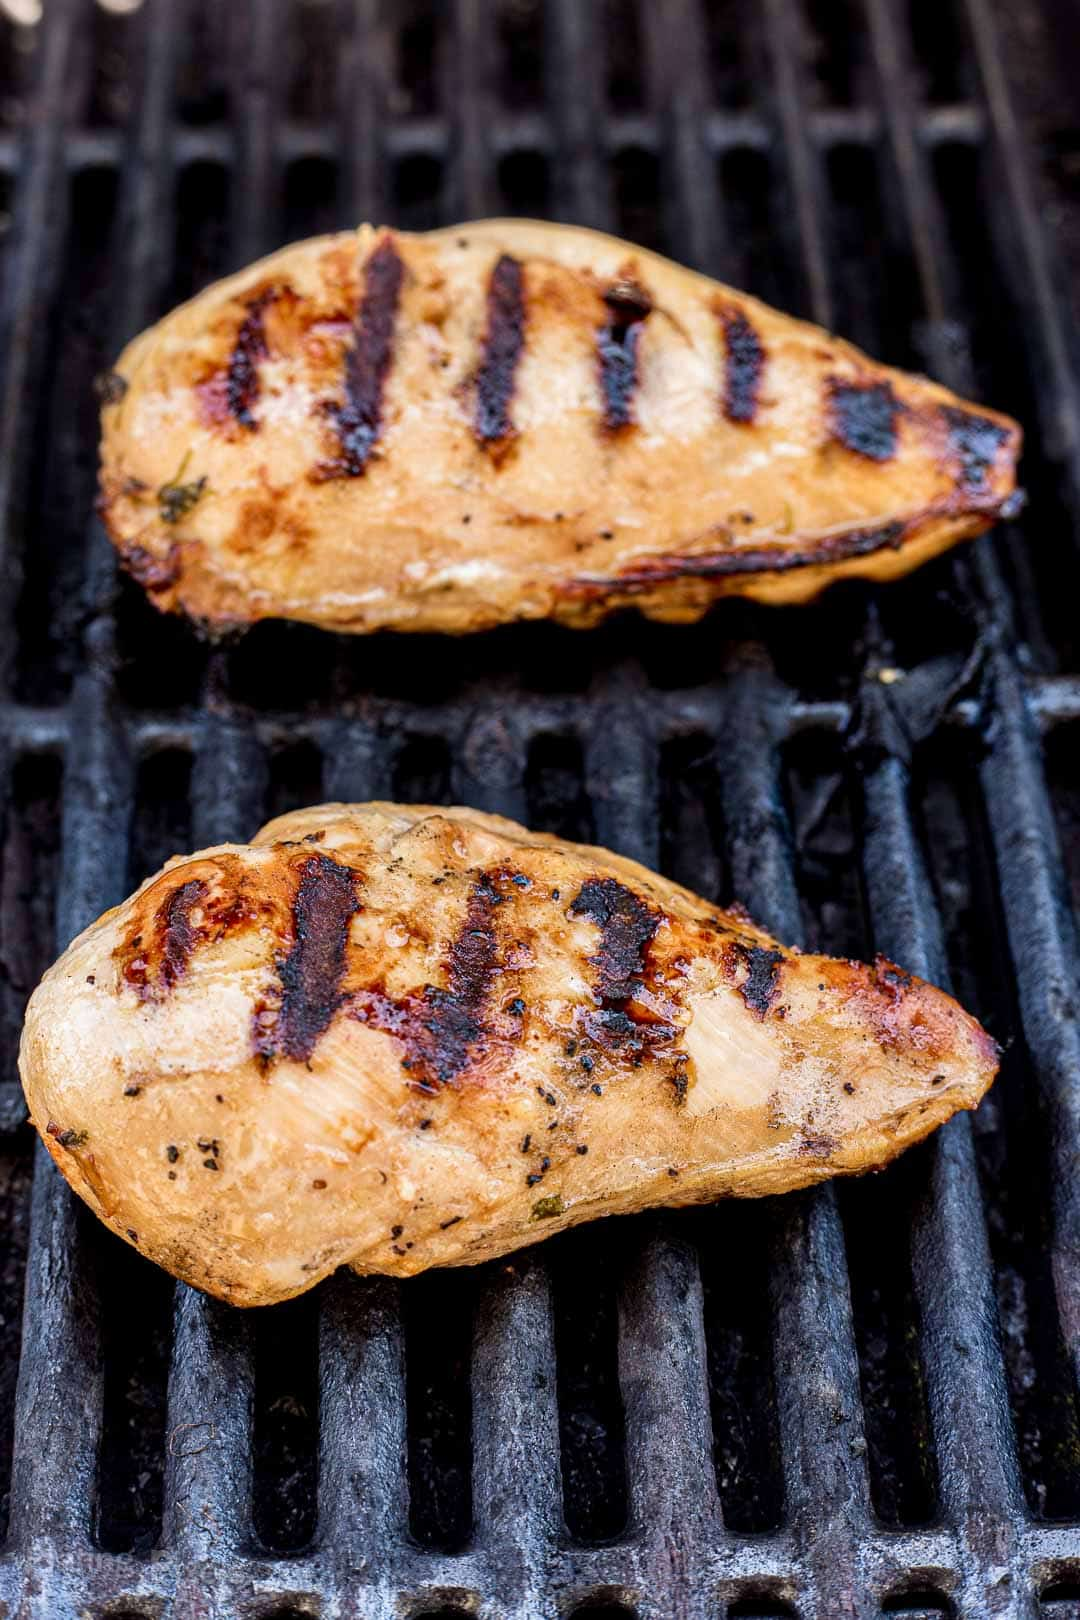 Process shot of grilling fajita marinated chicken breasts on a gas grill